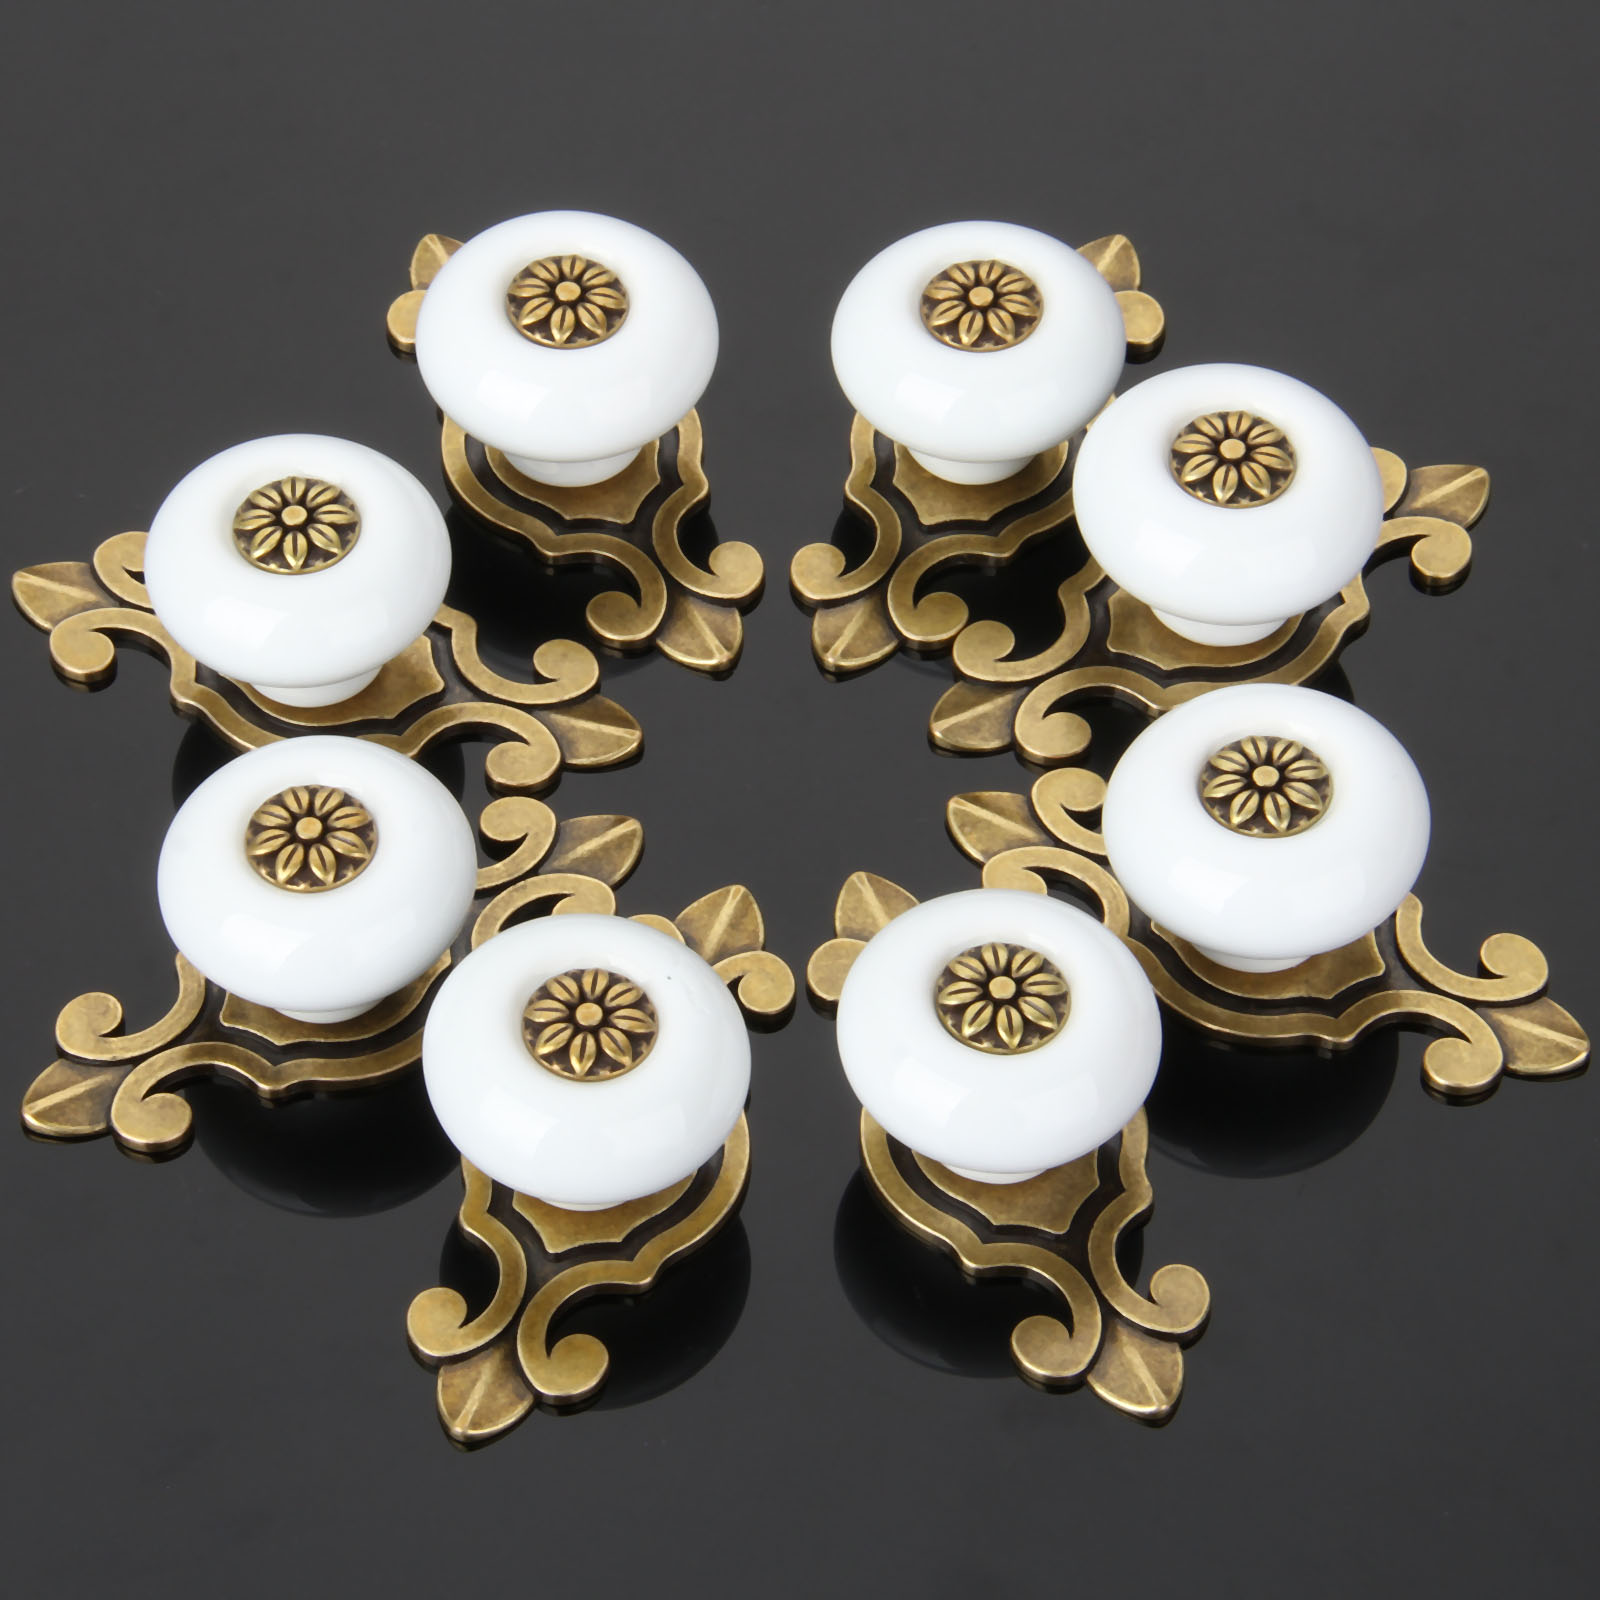 8Pcs Furniture Handle Ceramic Cabinet Knobs and Handles Door Cupboard Drawer Kitchen Pull Handle Furniture Fitting Bronze White furniture drawer handles wardrobe door handle and knobs cabinet kitchen hardware pull gold silver long hole spacing c c 96 224mm